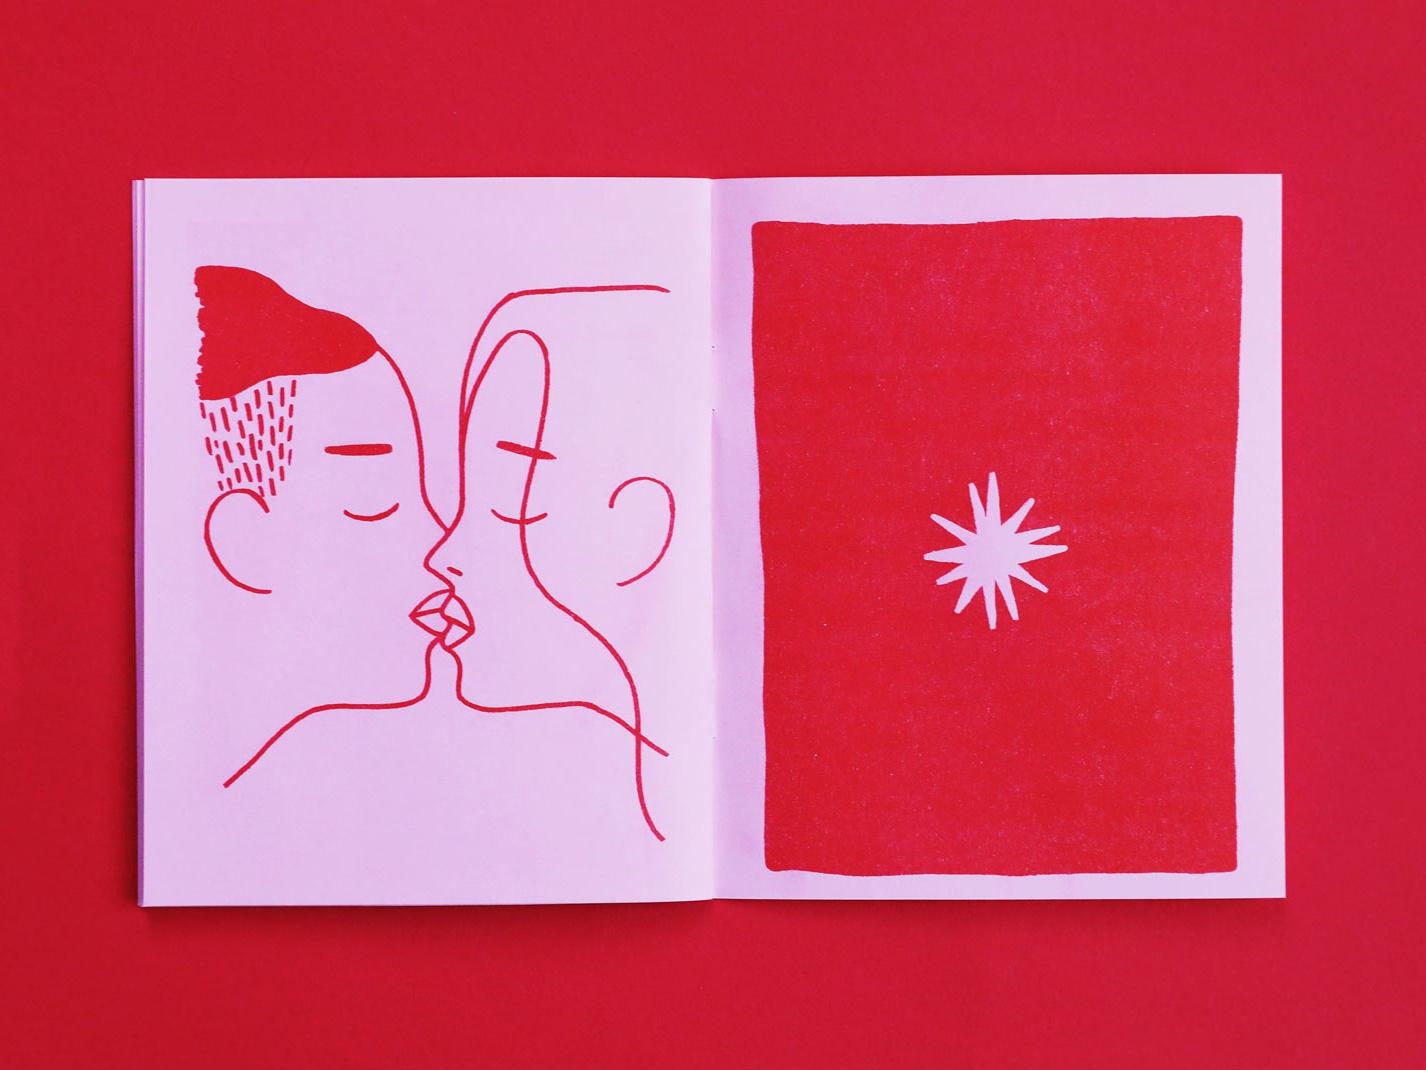 Sex Dream Zine Spread zine risograph riso red pink lady ladies illustration